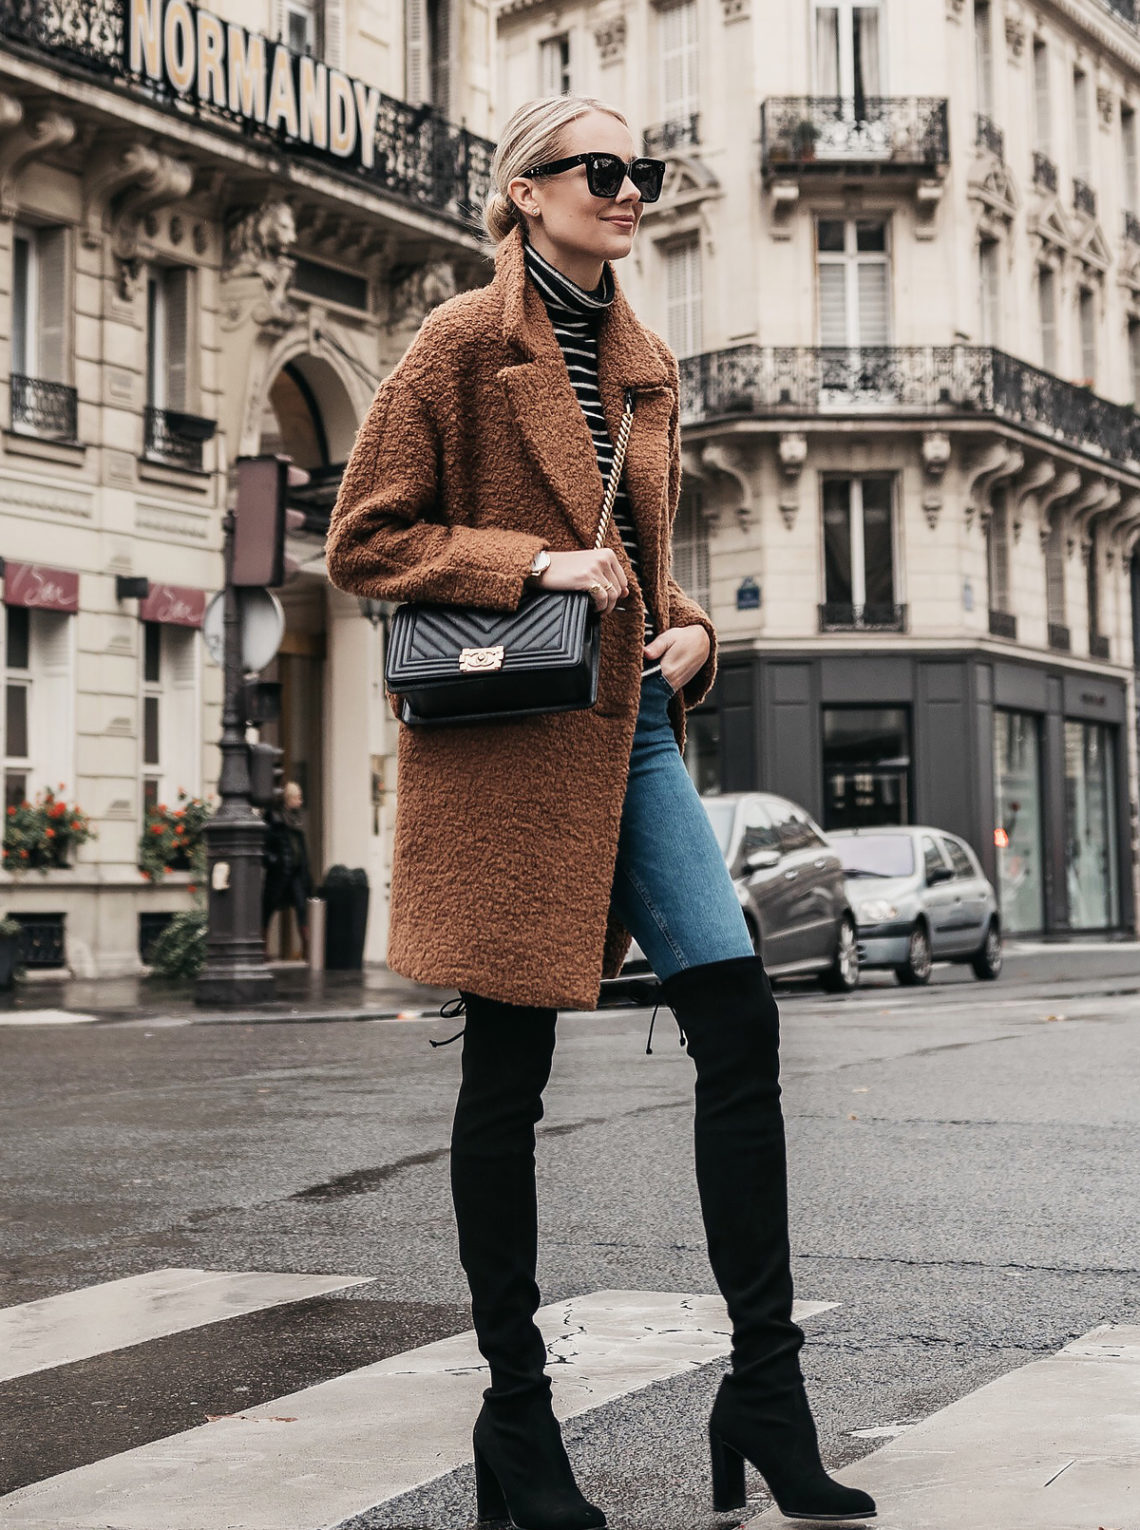 Blonde Woman Wearing Teddy Bear Coat Black White Stripe Turtleneck Sweater Denim Jeans Stuart Weitzman Black Over-the-Knee Boots Chanel Boy Bag Paris Street Style Fashion Jackson Dallas Blogger Fashion Blogger Street Style